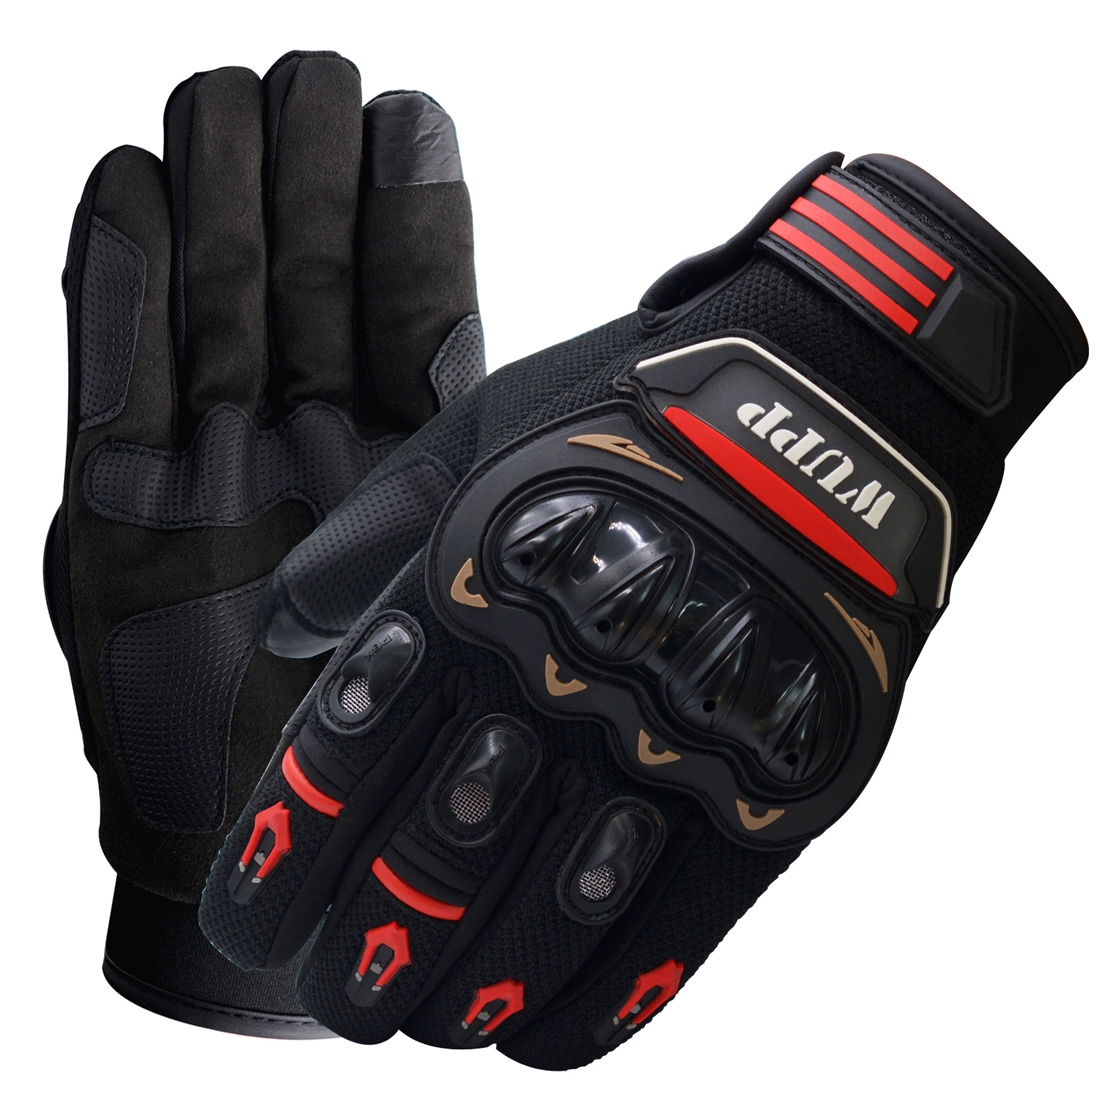 Motorcycle Gloves Touch Screen Waterproof Breathable Wearable Anti-skid Resistance Summer Winter Full-Finger Protective Gloves, Size: XL